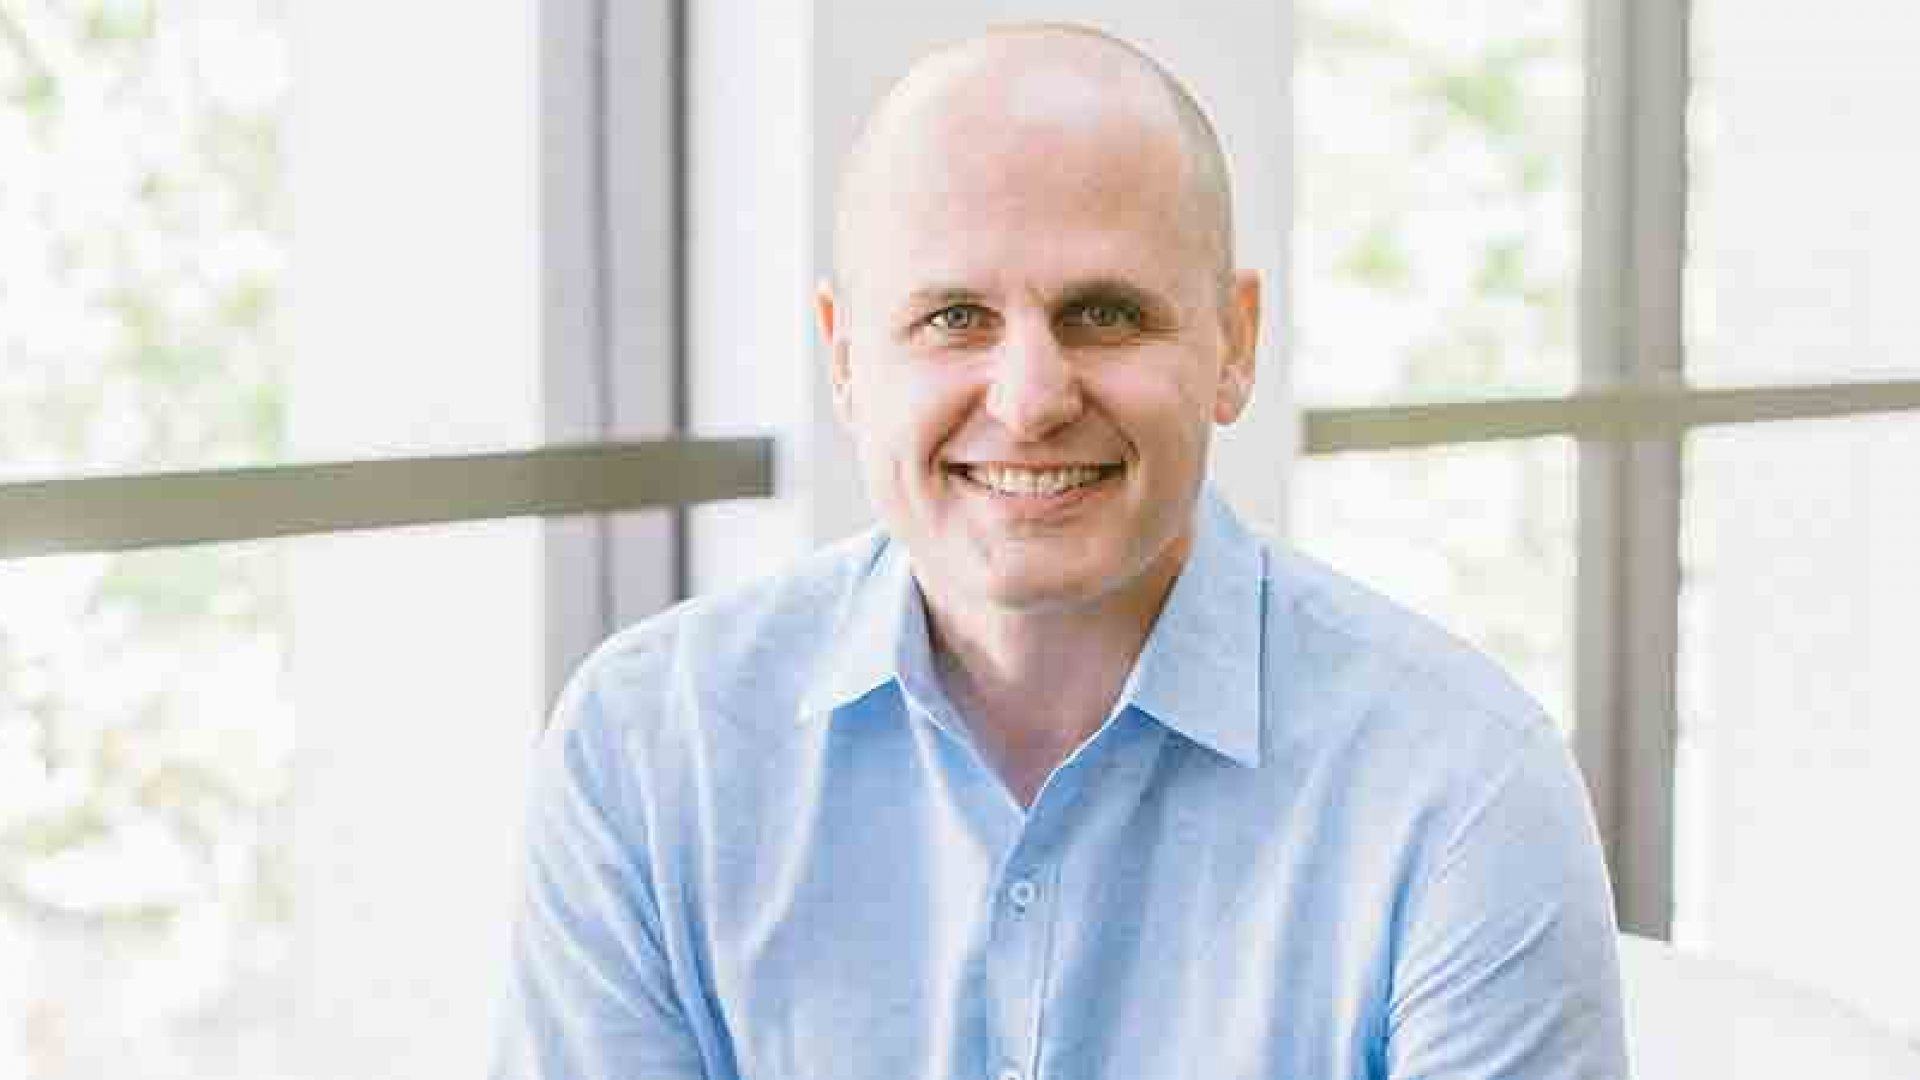 From Big to Small: How Ex-Google SVP Laszlo Bock Aims for Big Growth with His Small Business, Humu